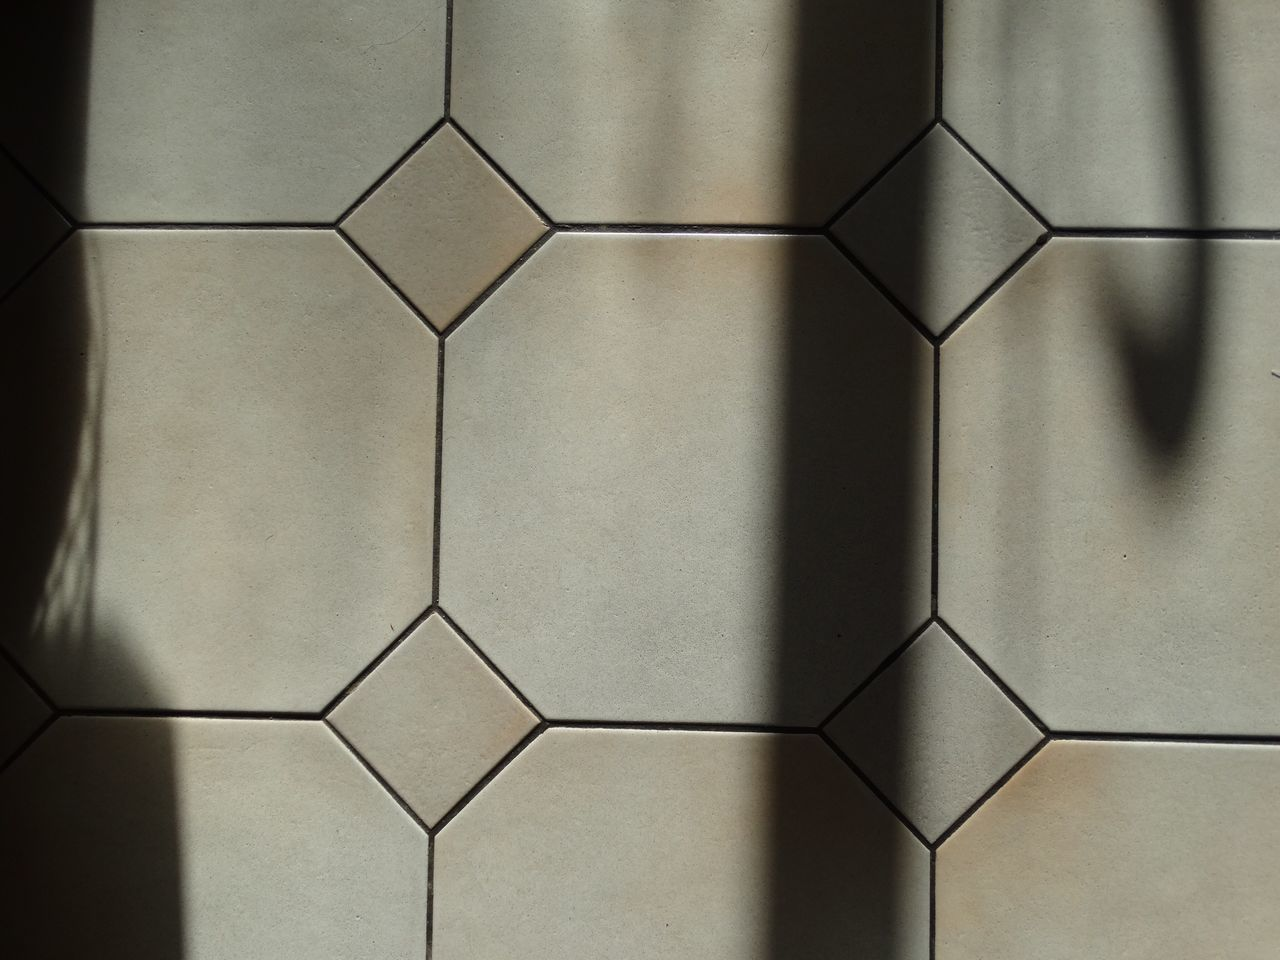 Floor and shadows. Pattern Hexagon Geometric Shape Shape No People Close-up Day Shadow Shadows Floor Flooring Backgrounds Simplicity Perspective Textured  Textures And Surfaces Texture Kitchen Kitchen Floor Tiles Tile Tiling